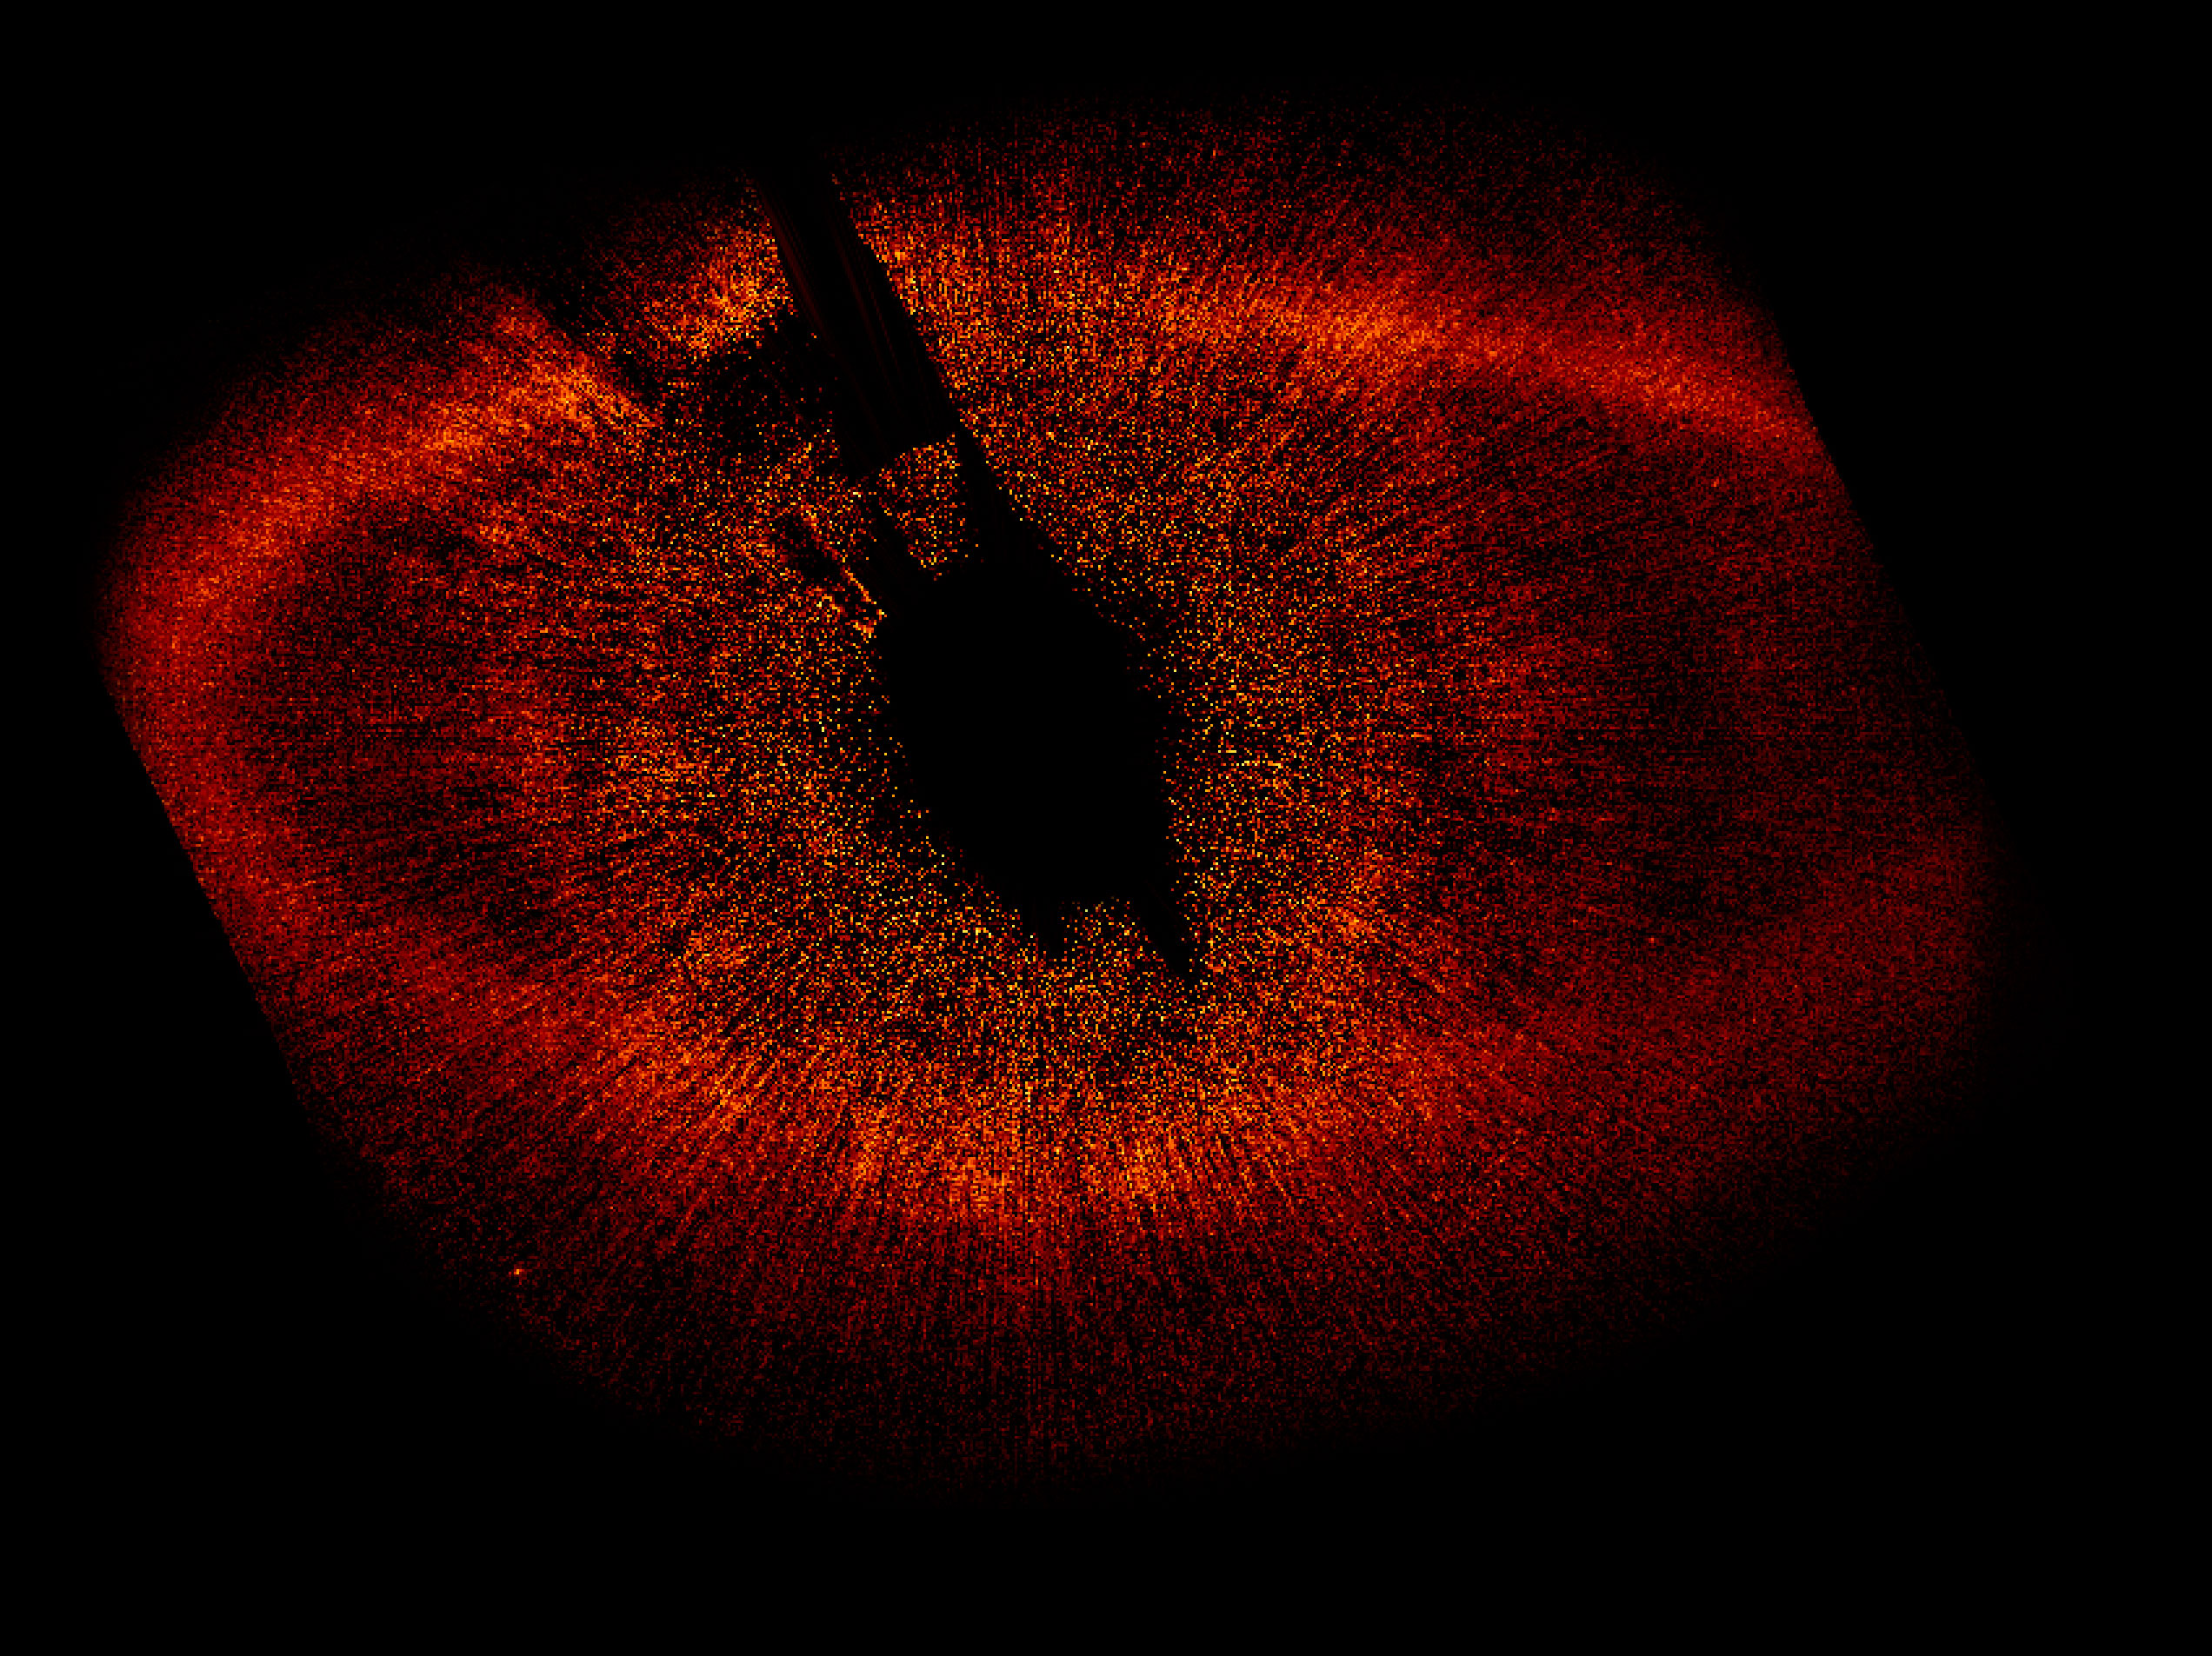 Great Eye of Sauron The large disk of gas surrounding Fomalhaut, dubbed the 'Great Eye of Sauron' by New Scientist magazine, is clearly visible in this image. Fomalhaut is the brightest star in the constellation Piscis Austrinus.